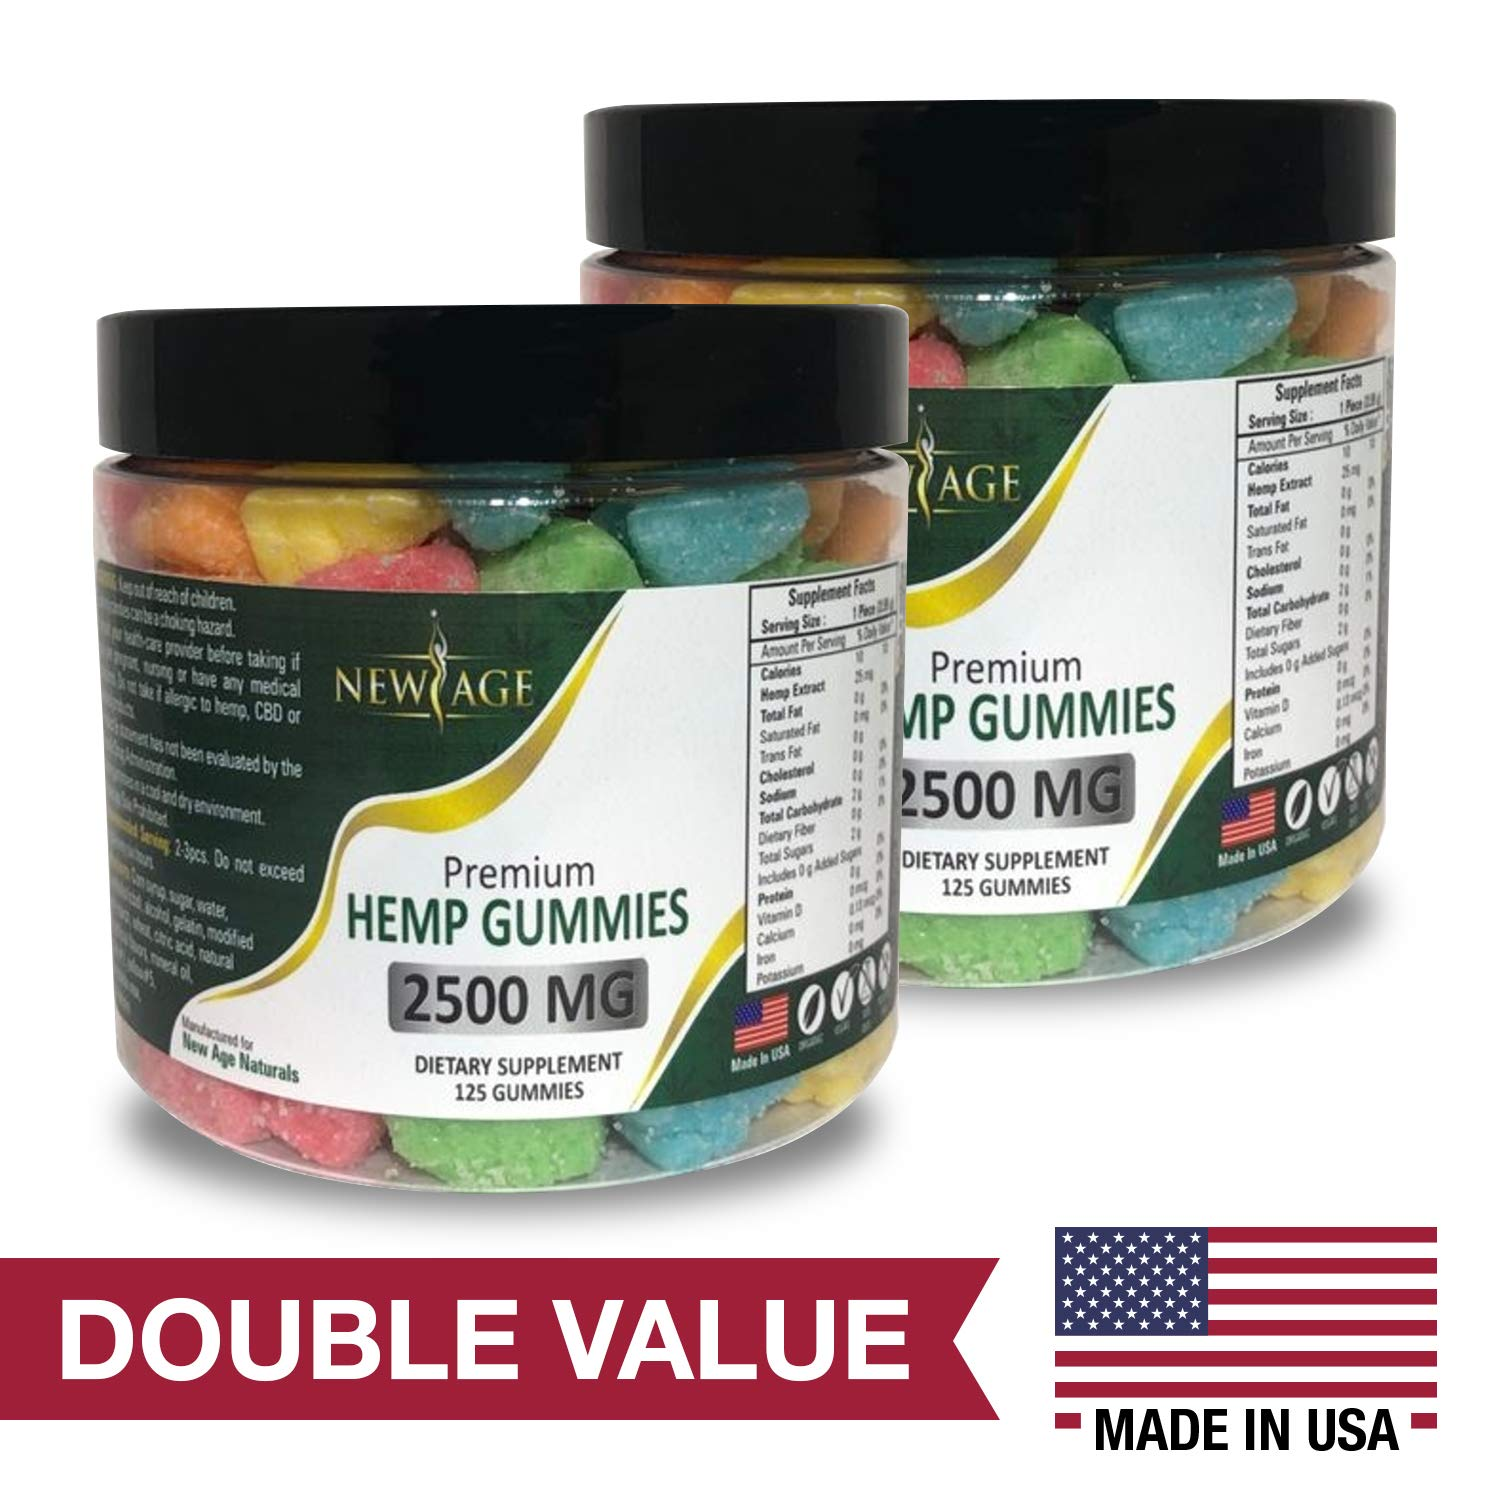 (2 Pack) Advanced Hemp Big Gummies by New Age Naturals - 5000mg- 250 ct. 20mg Per Gummy- Organic Hemp Extract Infused - Relaxing, Pain Relief, Stress & Anxiety Relief